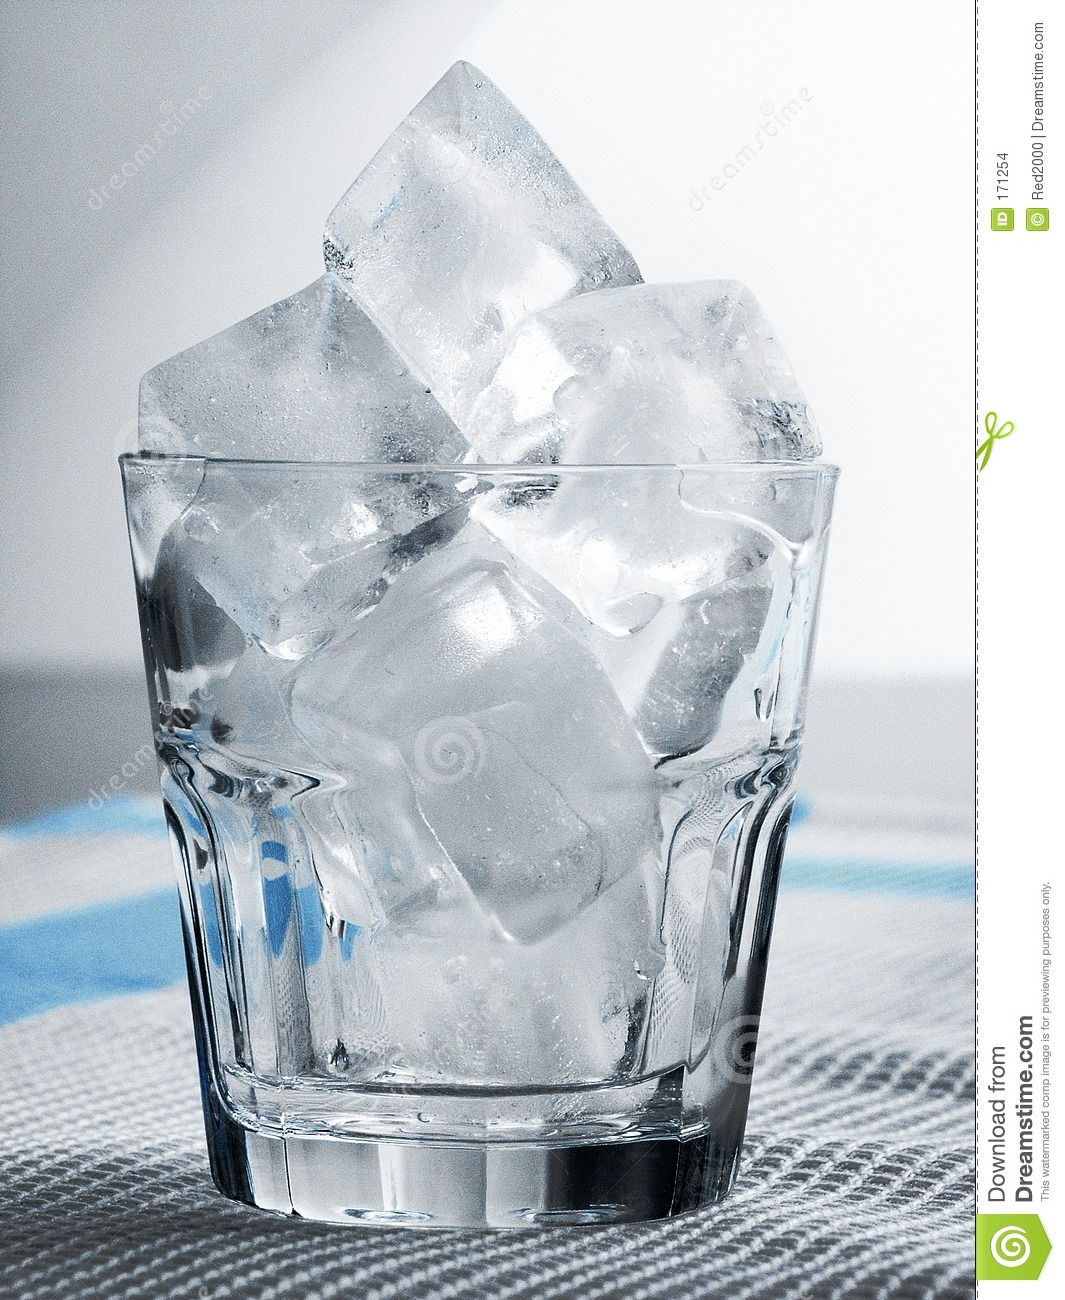 Download Ice stock photo. Image of studies, mixed, thirsty, cubes - 171254